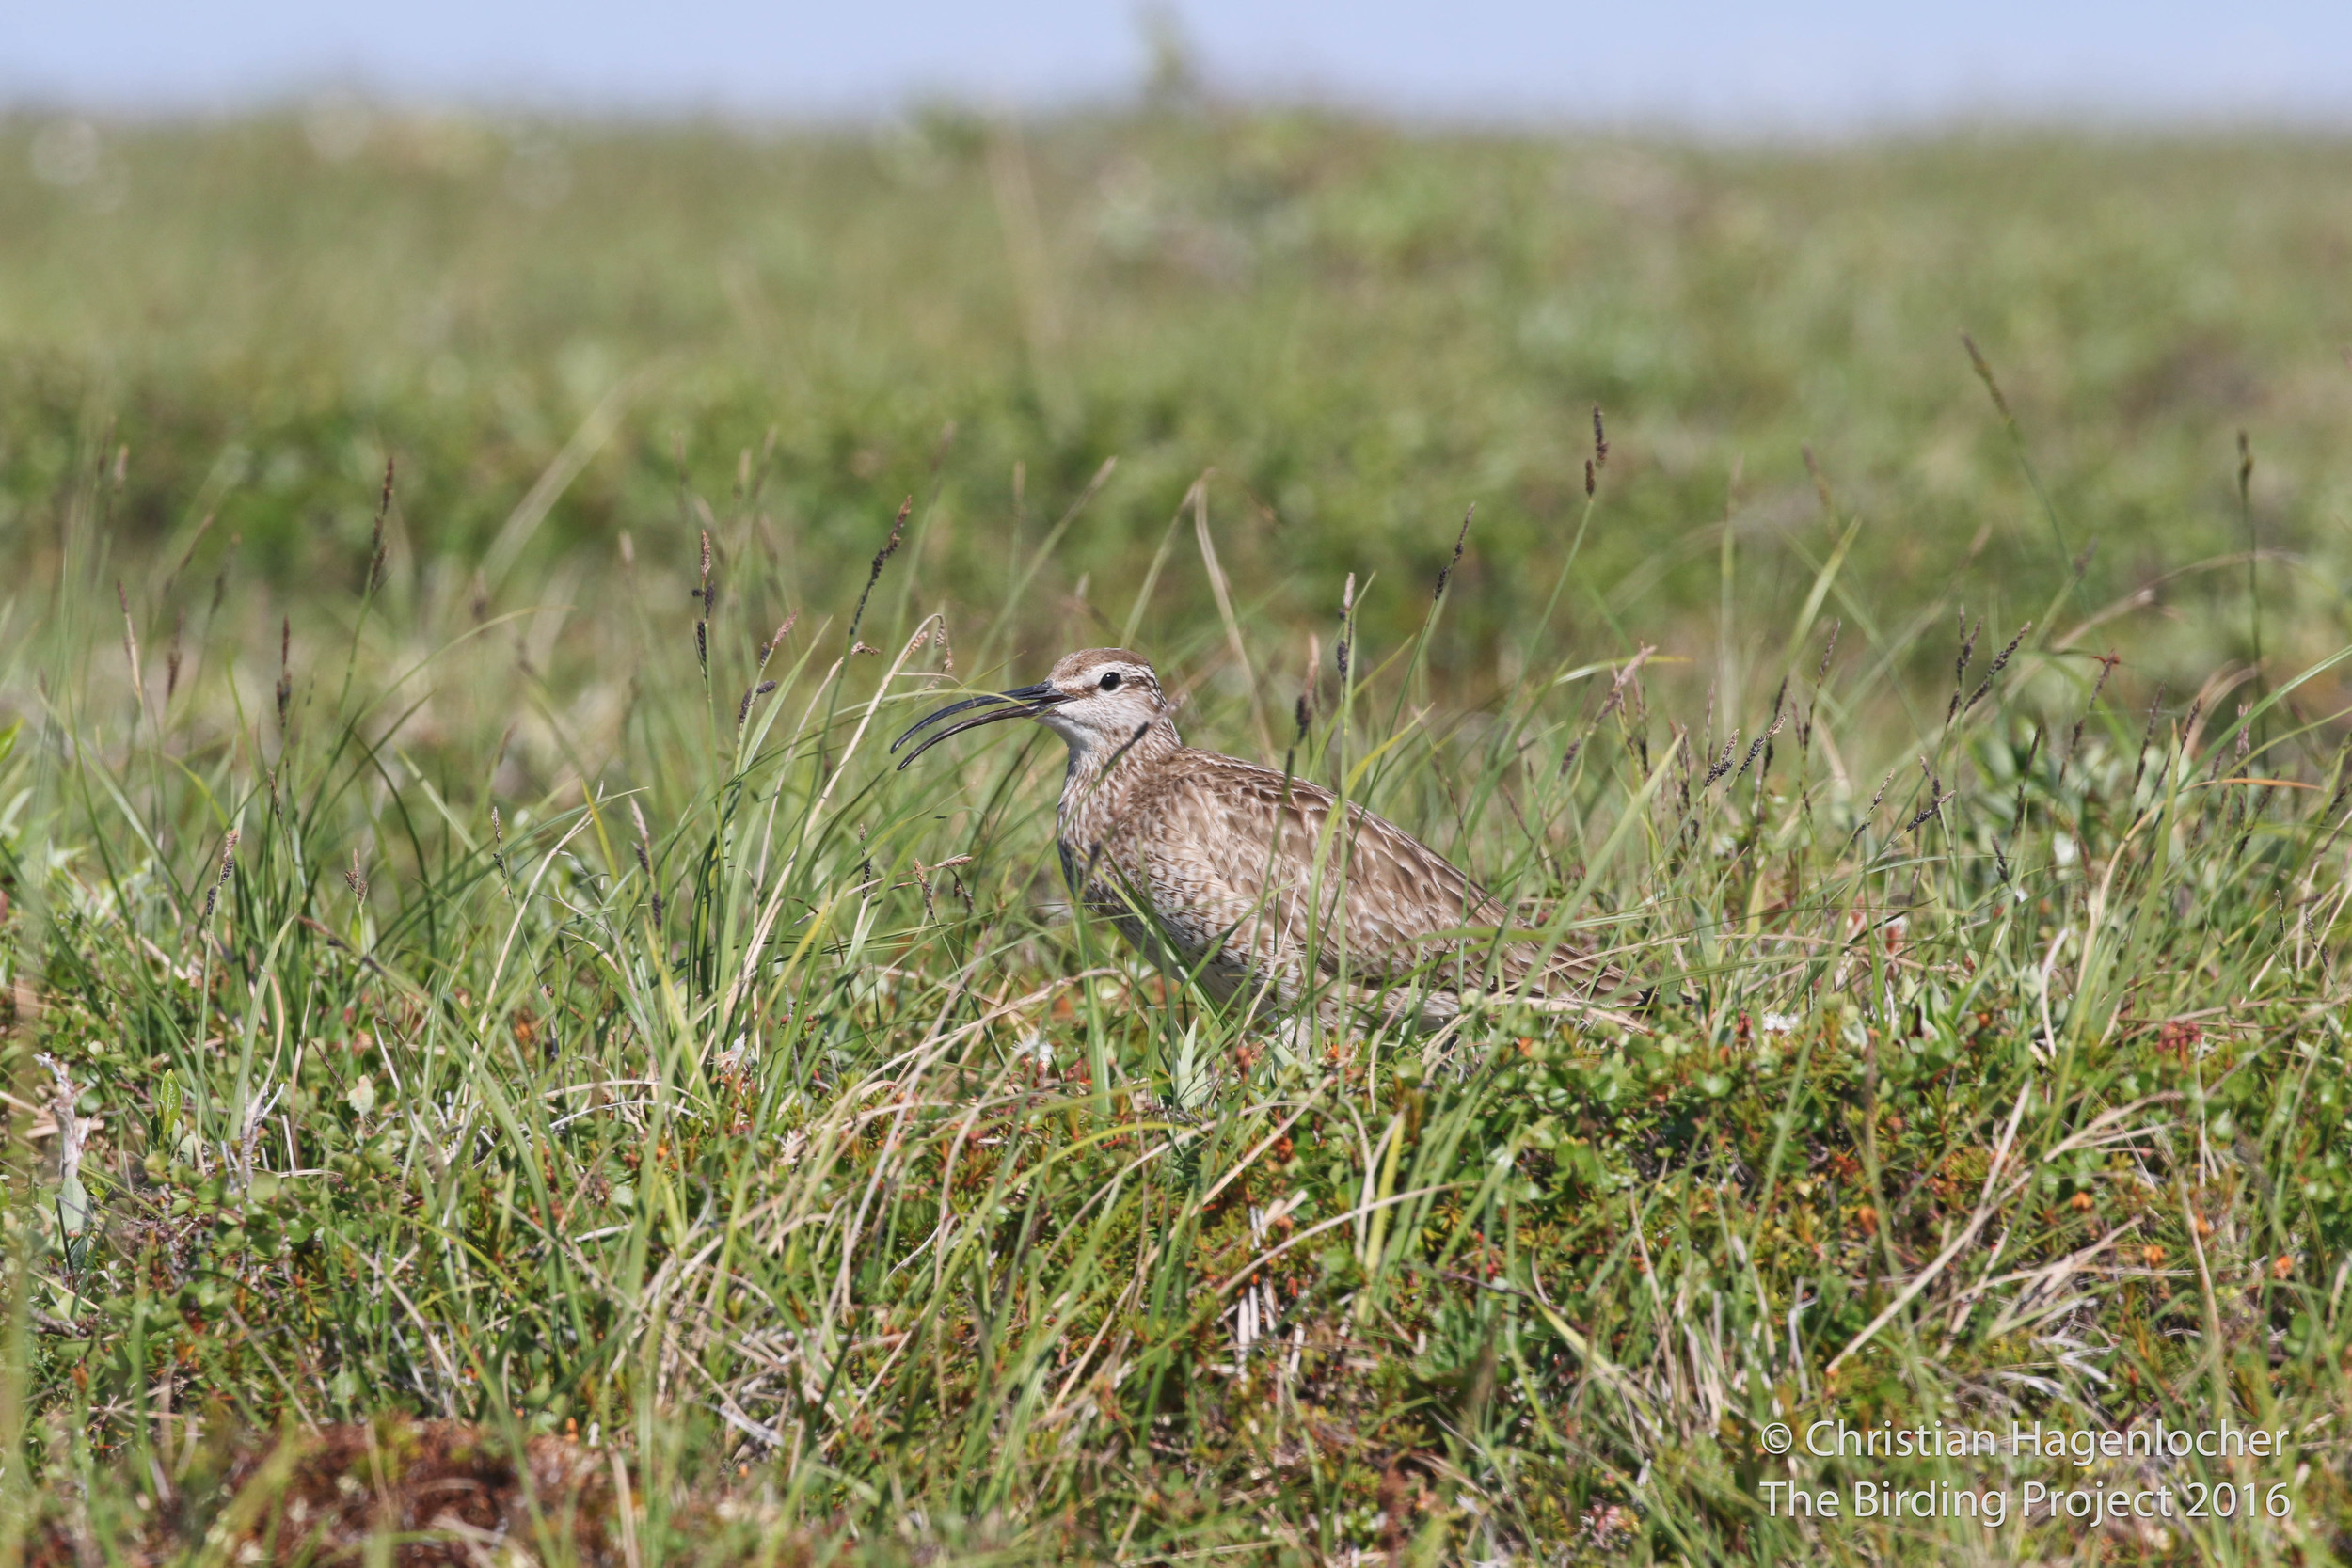 The similar-lookng Whimbrel snuck in, trying to throw off my count of curlews